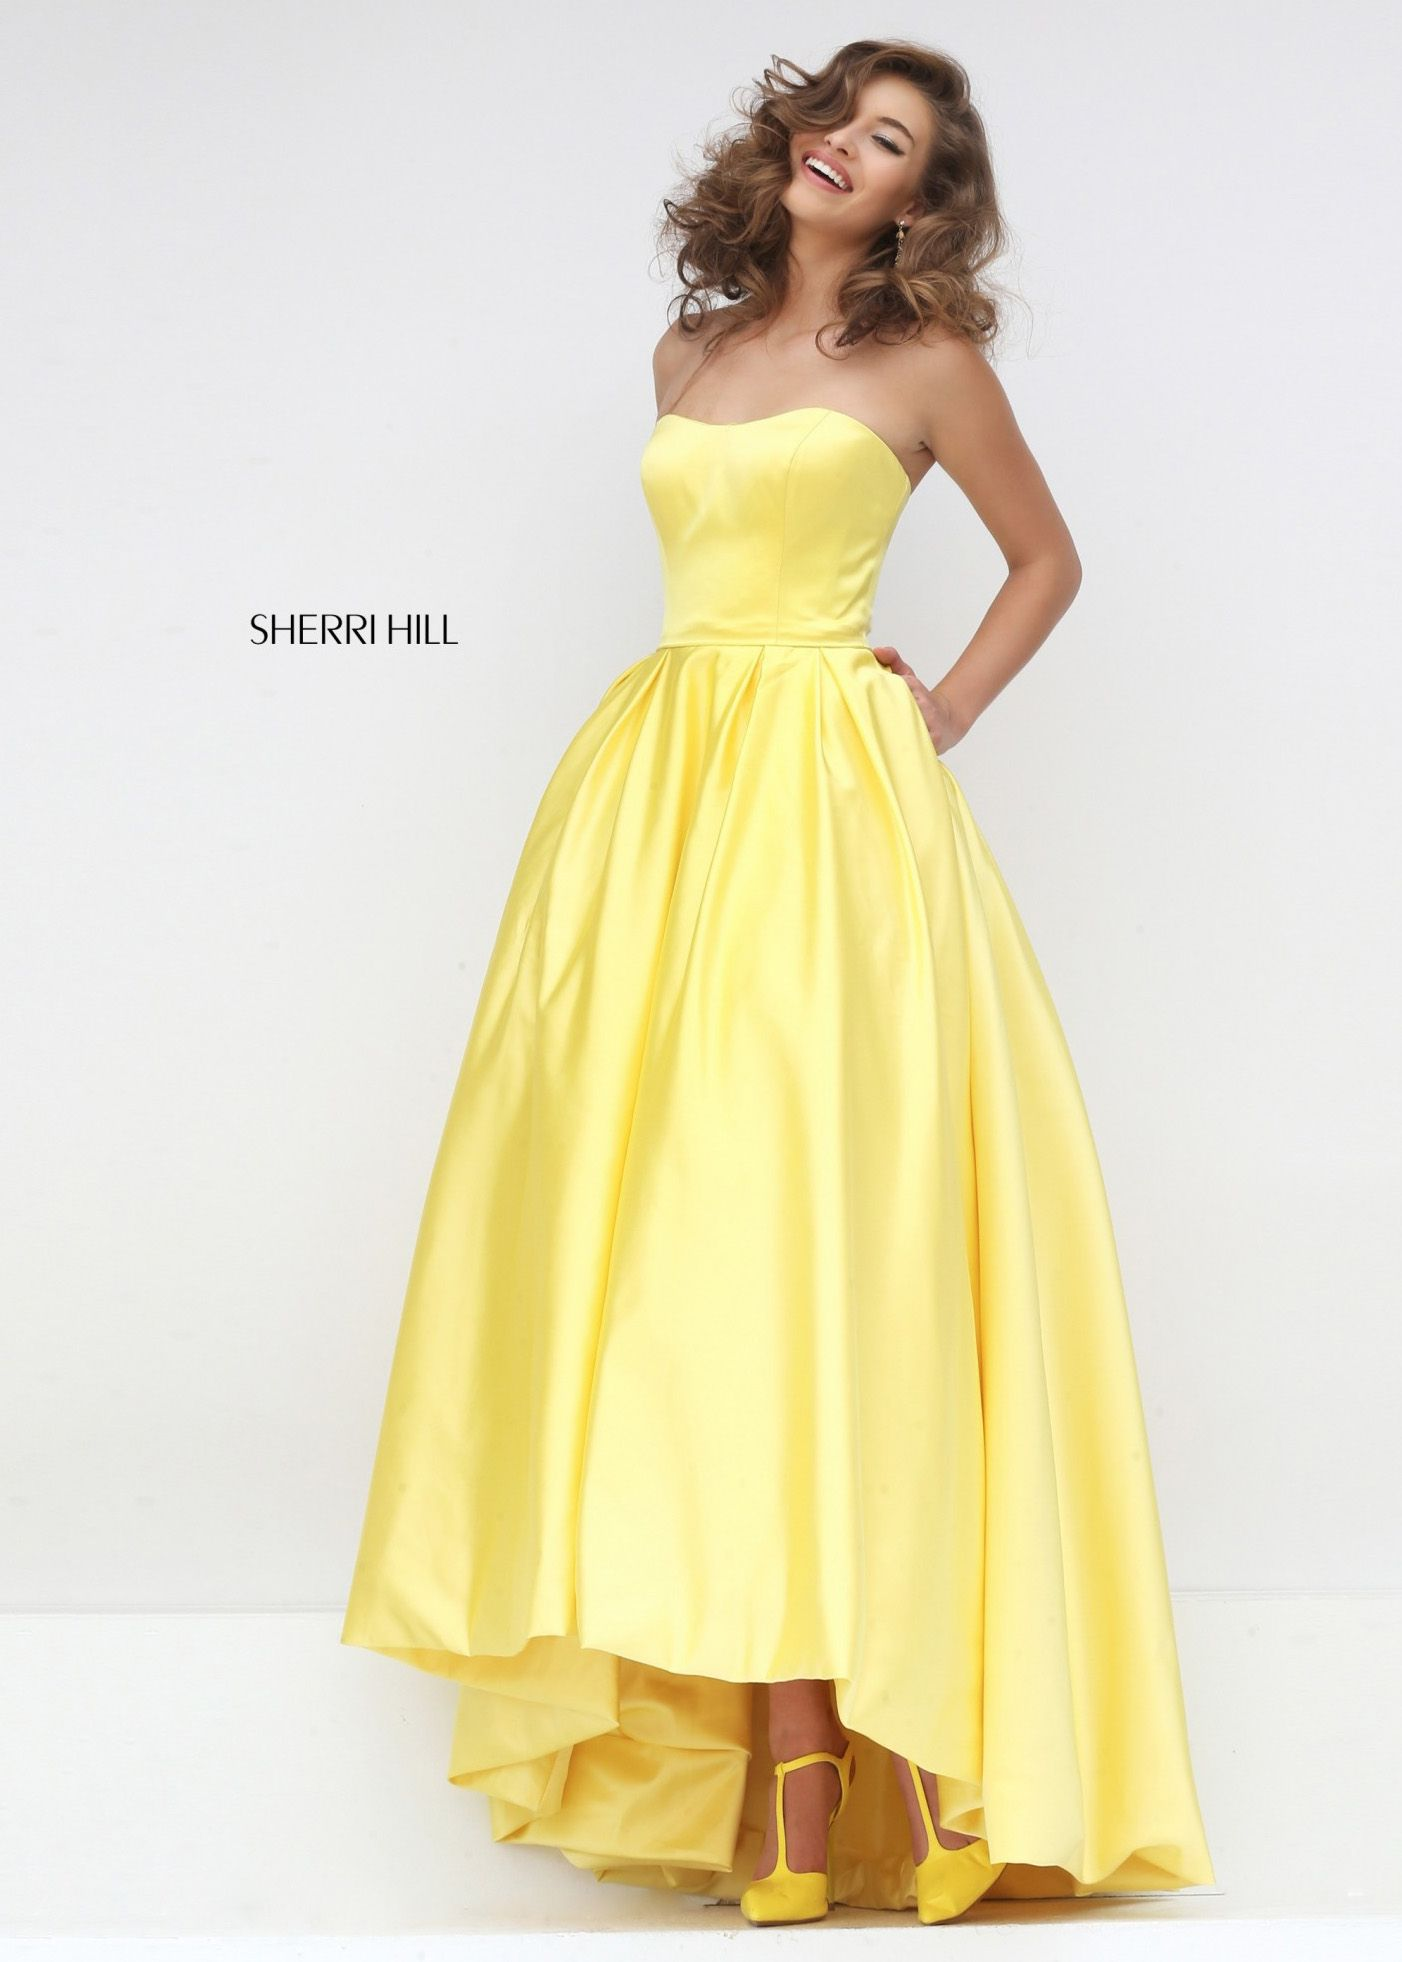 76d36423127 ... prom gowns. Sherri Hill - Beauty and the Beast dress